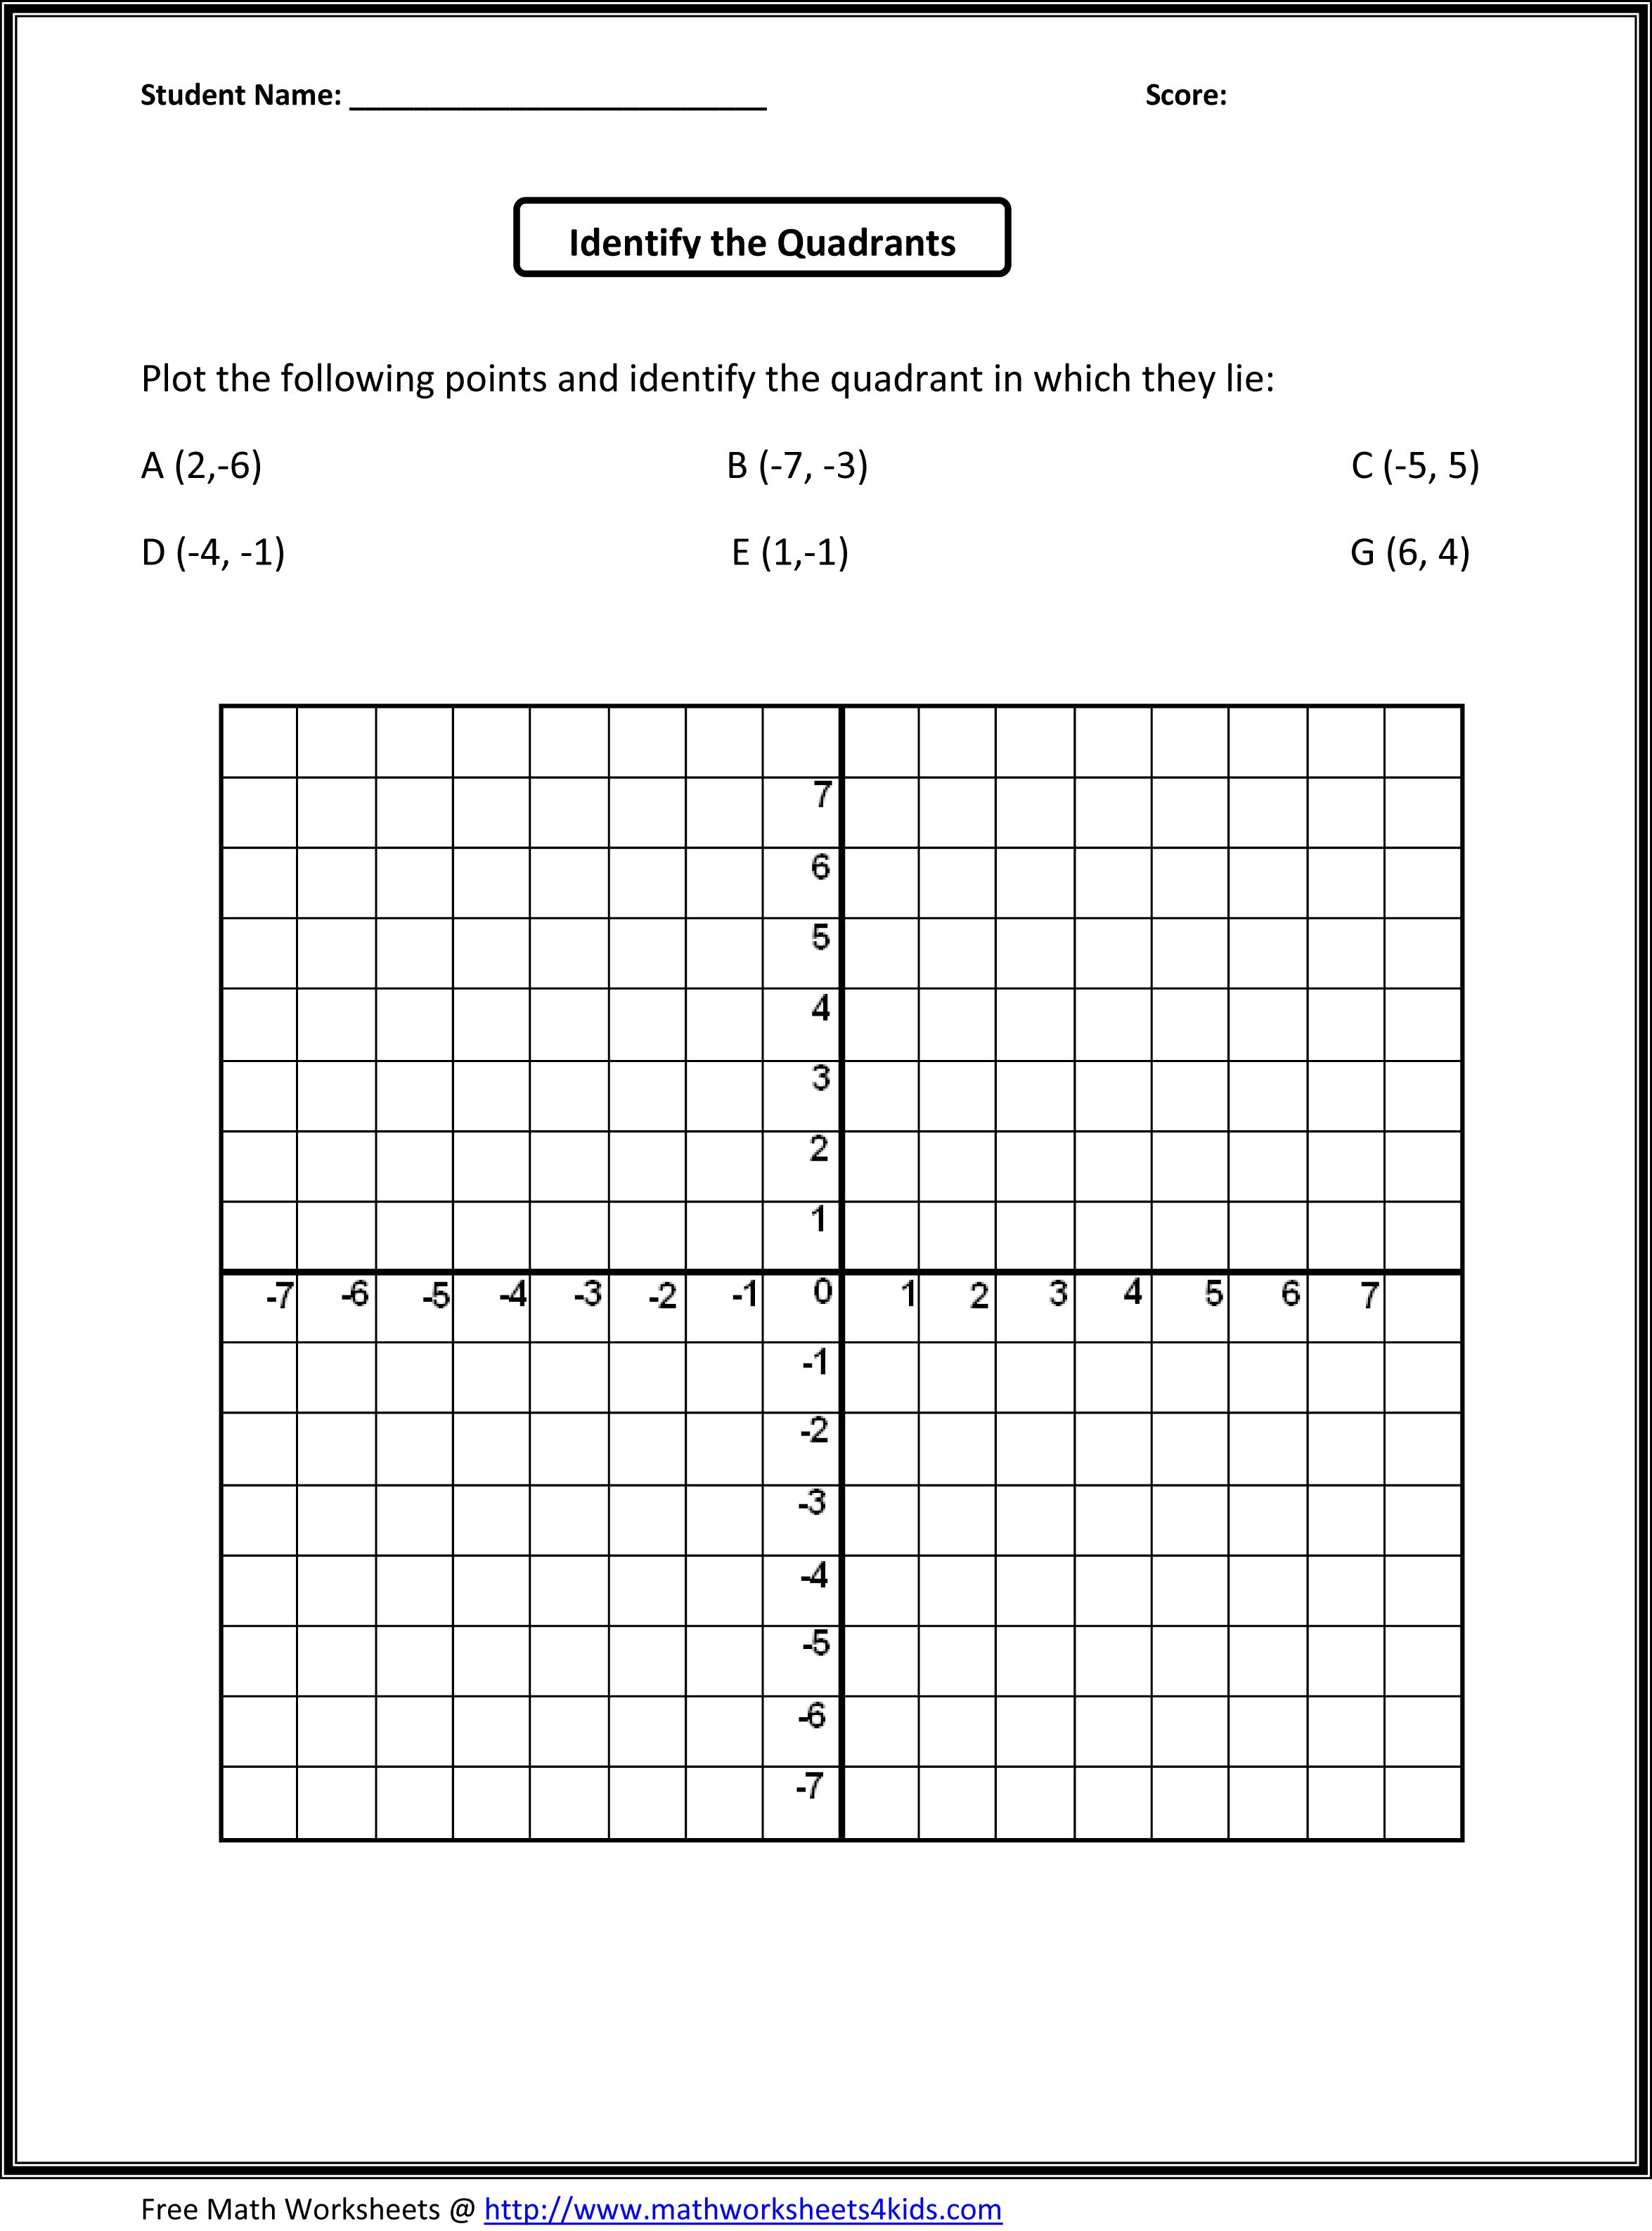 math worksheet : 1000 images about madi math on pinterest  5th grade math  : 5th Grade Math Printable Worksheets